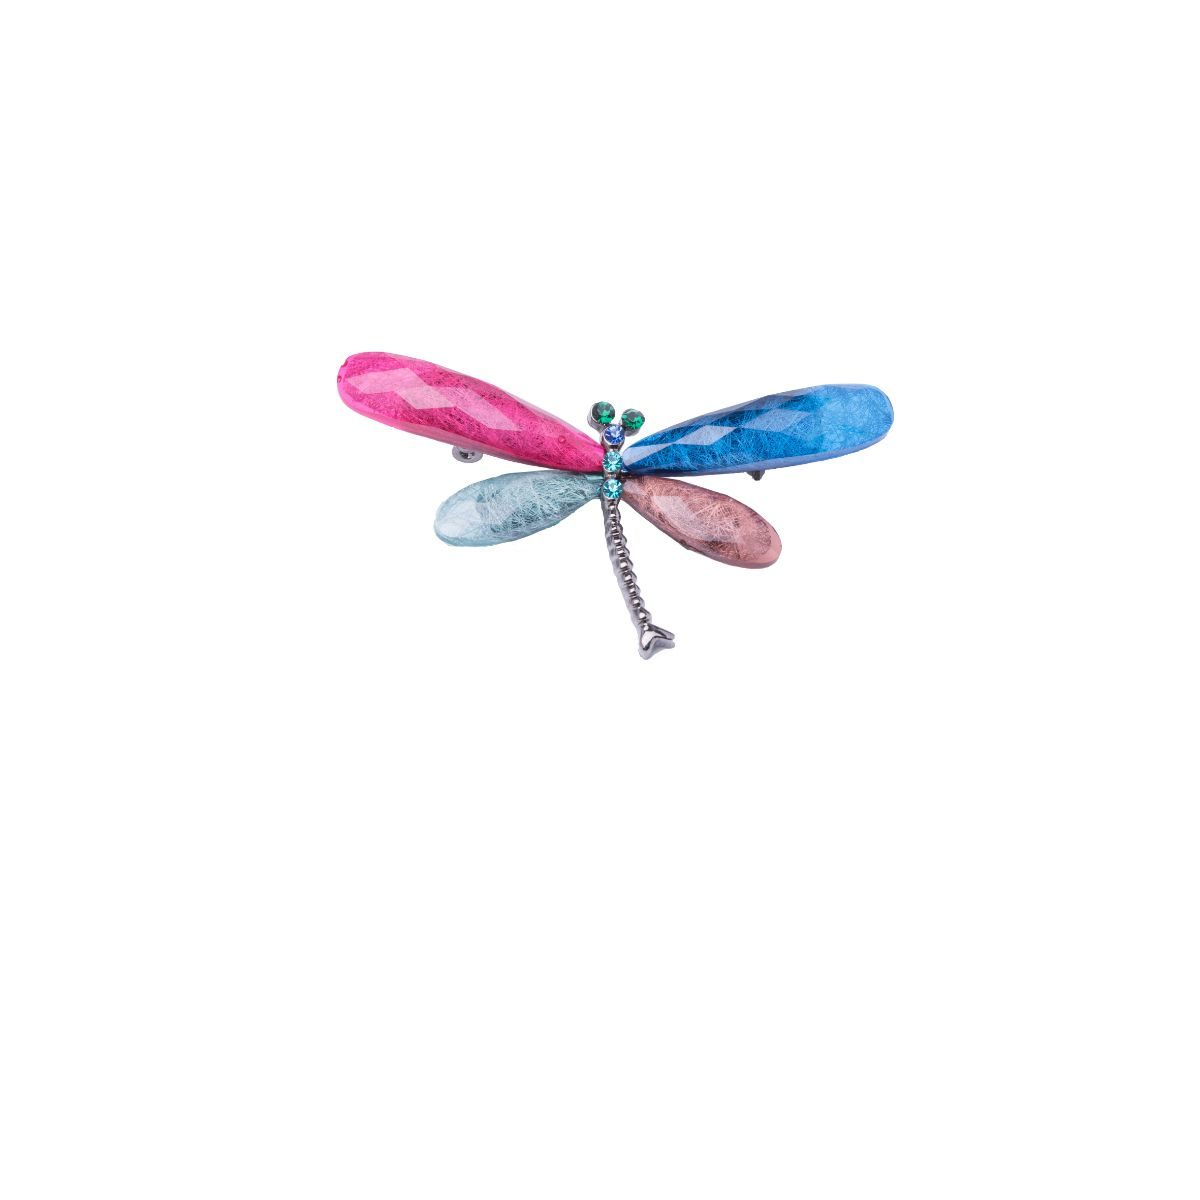 Libélula 7 cm dragonfly-shaped brooch with coloured methacrylate wings and small crystals set.